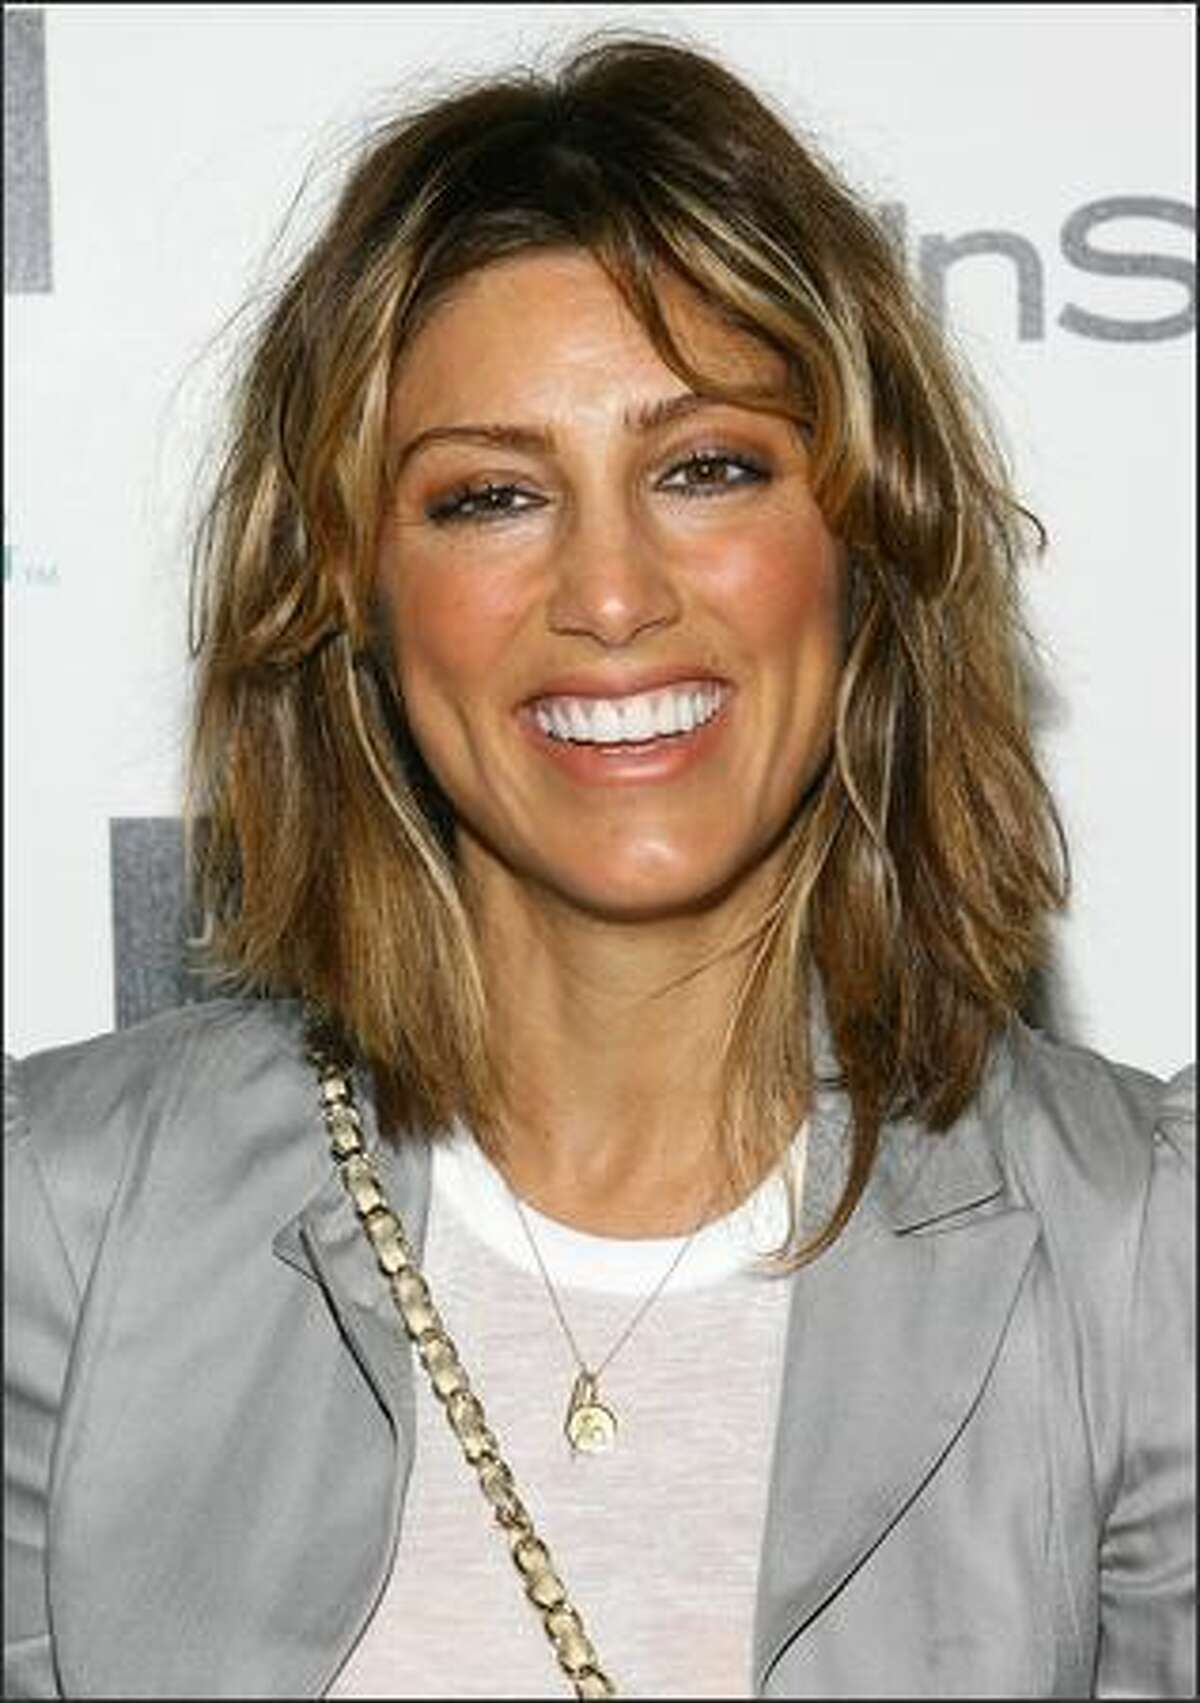 Actress Jennifer Esposito attends the InStyle Hair Issue launch party hosted by John Frieda Root Awakening at Hotel Gansevoort in New York City.KEEP CLICKING FOR MORE PHOTOS OF ESPOSITO THROUGH THE YEARS.